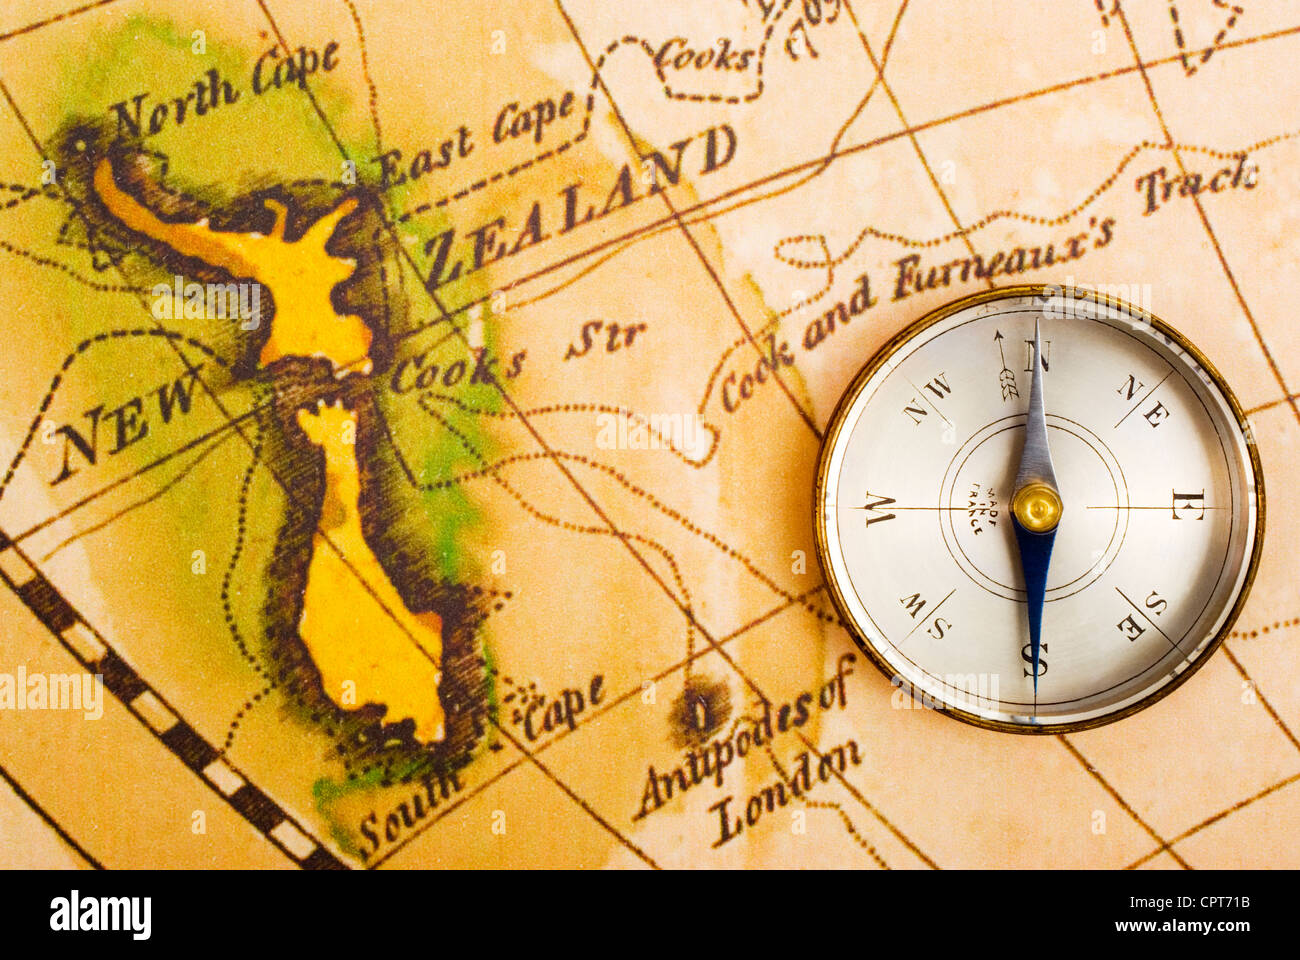 New zealand old map stock photo royalty free image 50290489 alamy antique compass and old map of captain cooks journeys showing new zealand stock gumiabroncs Gallery